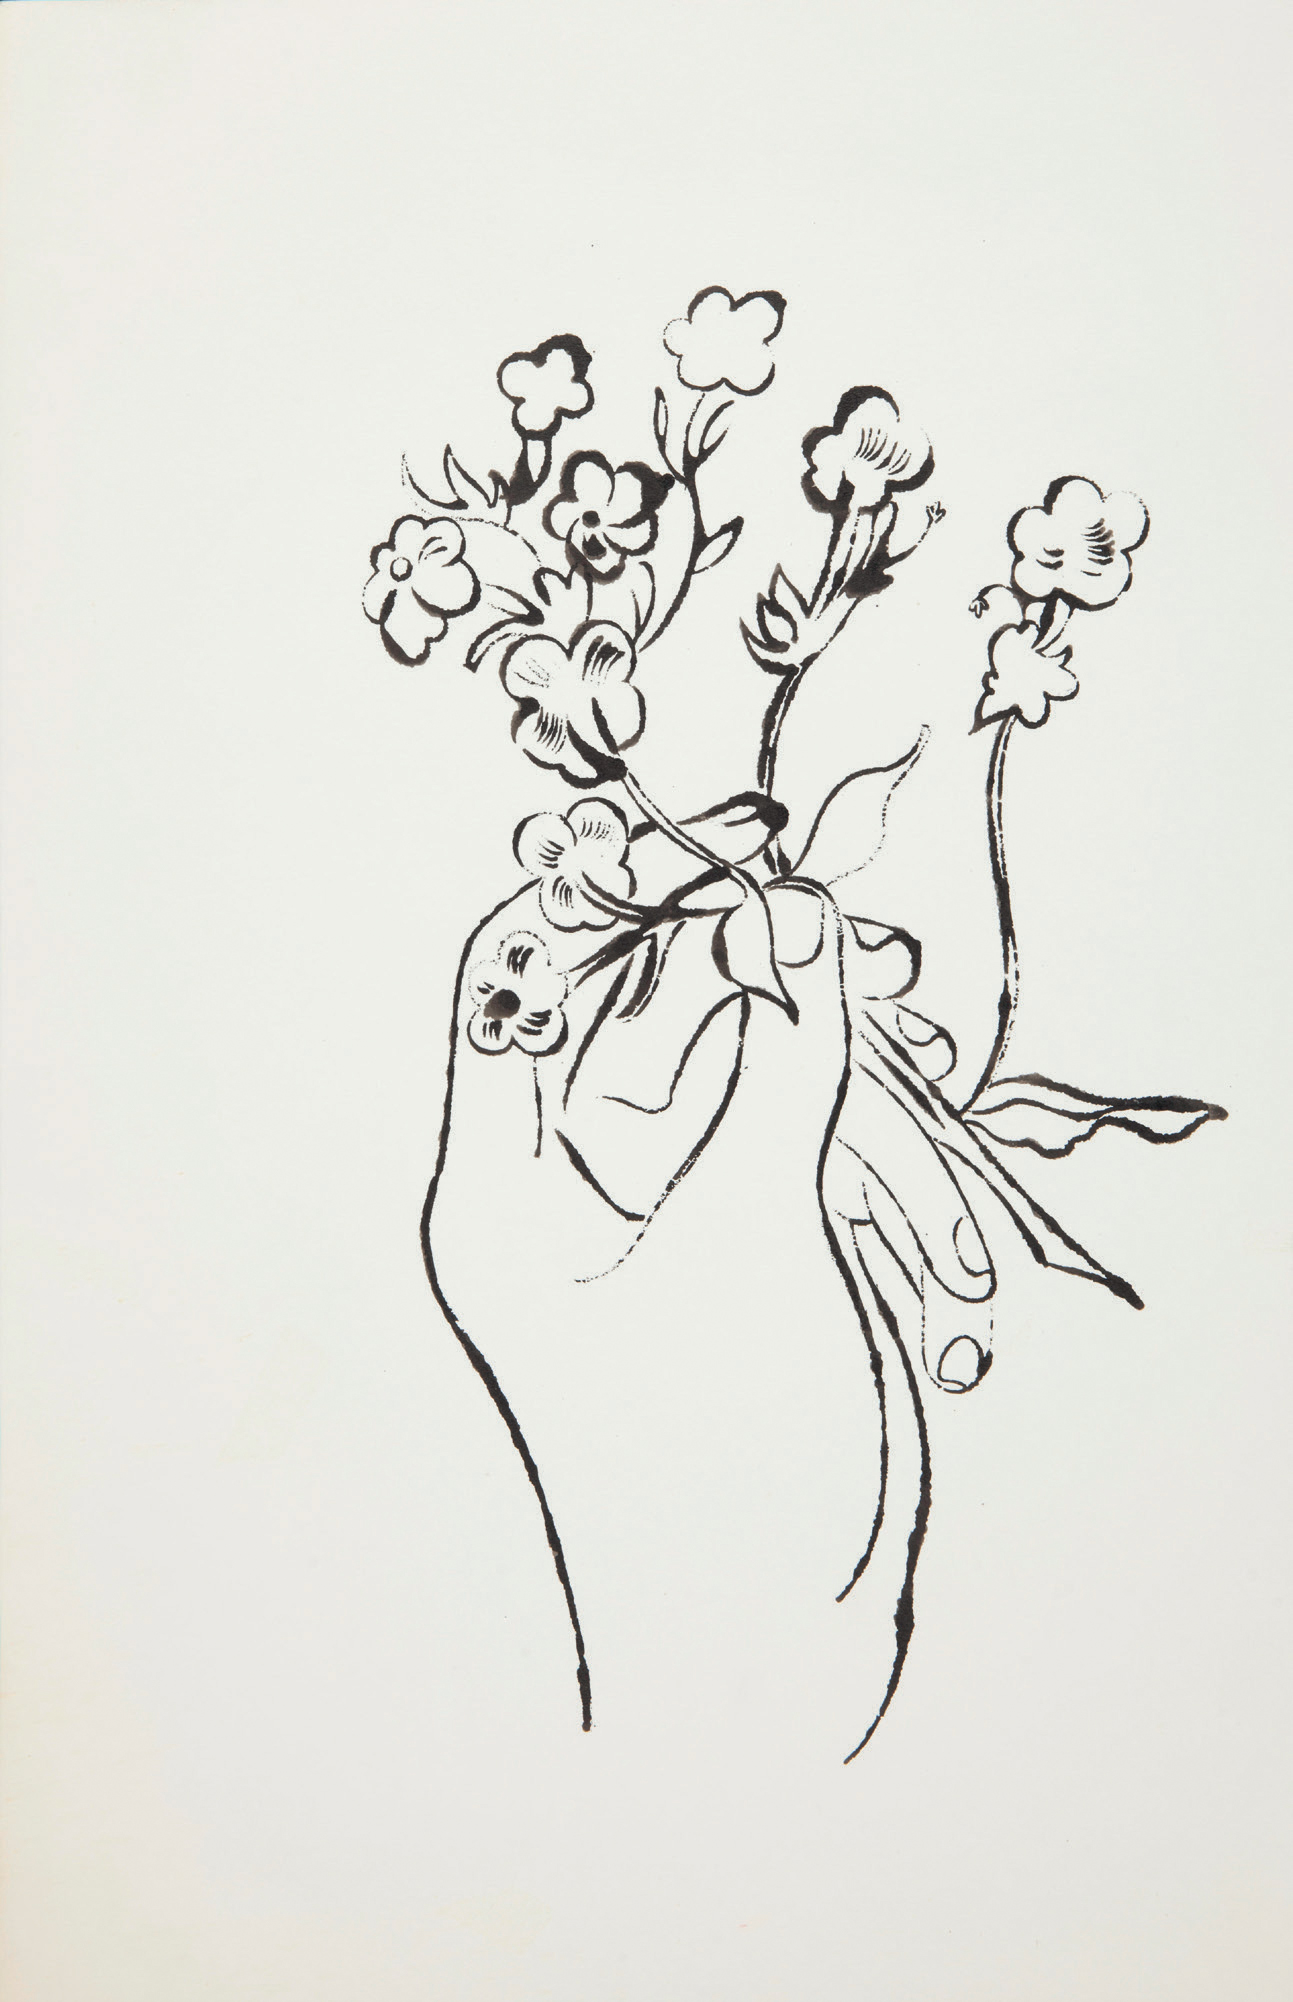 Andy Warhol 1928 1987 Male Hand Holding Flowers 1950s